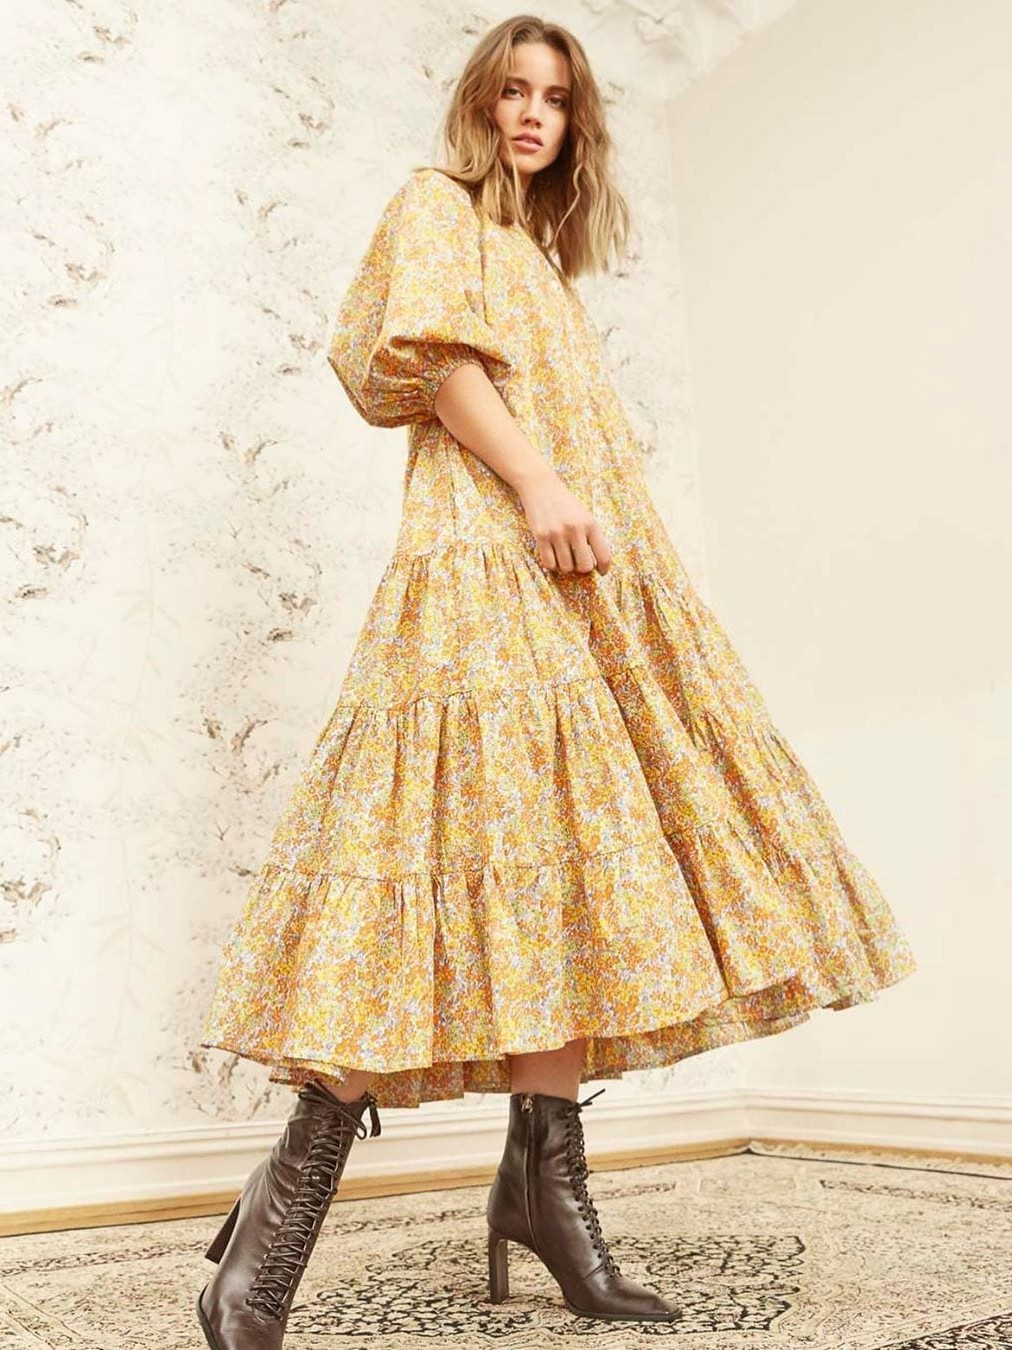 These Boho Chic Dresses Belong In Your Closet